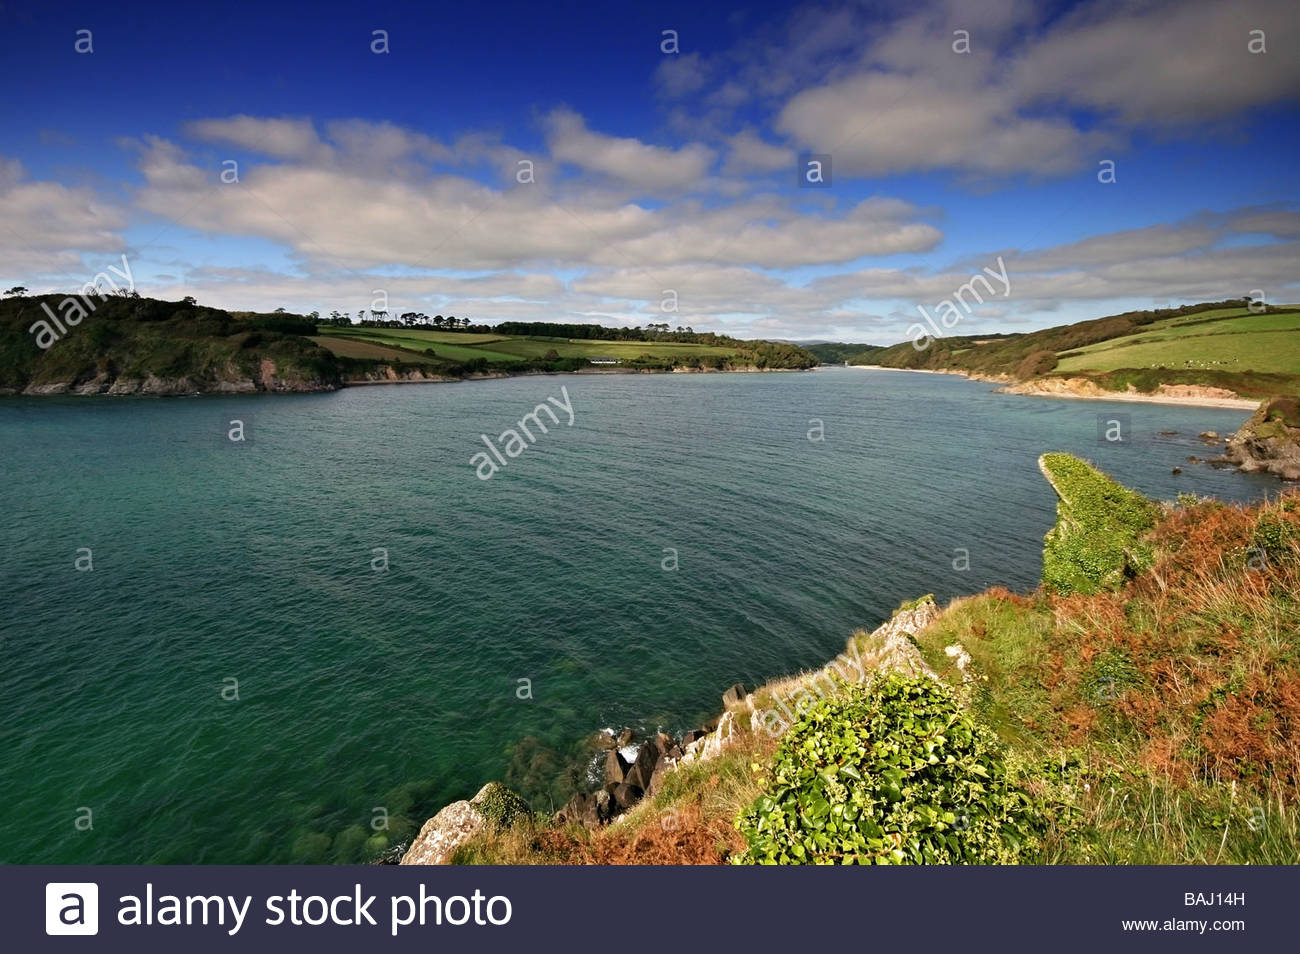 Mouth of the river Erme in Sumertime - Stock Image